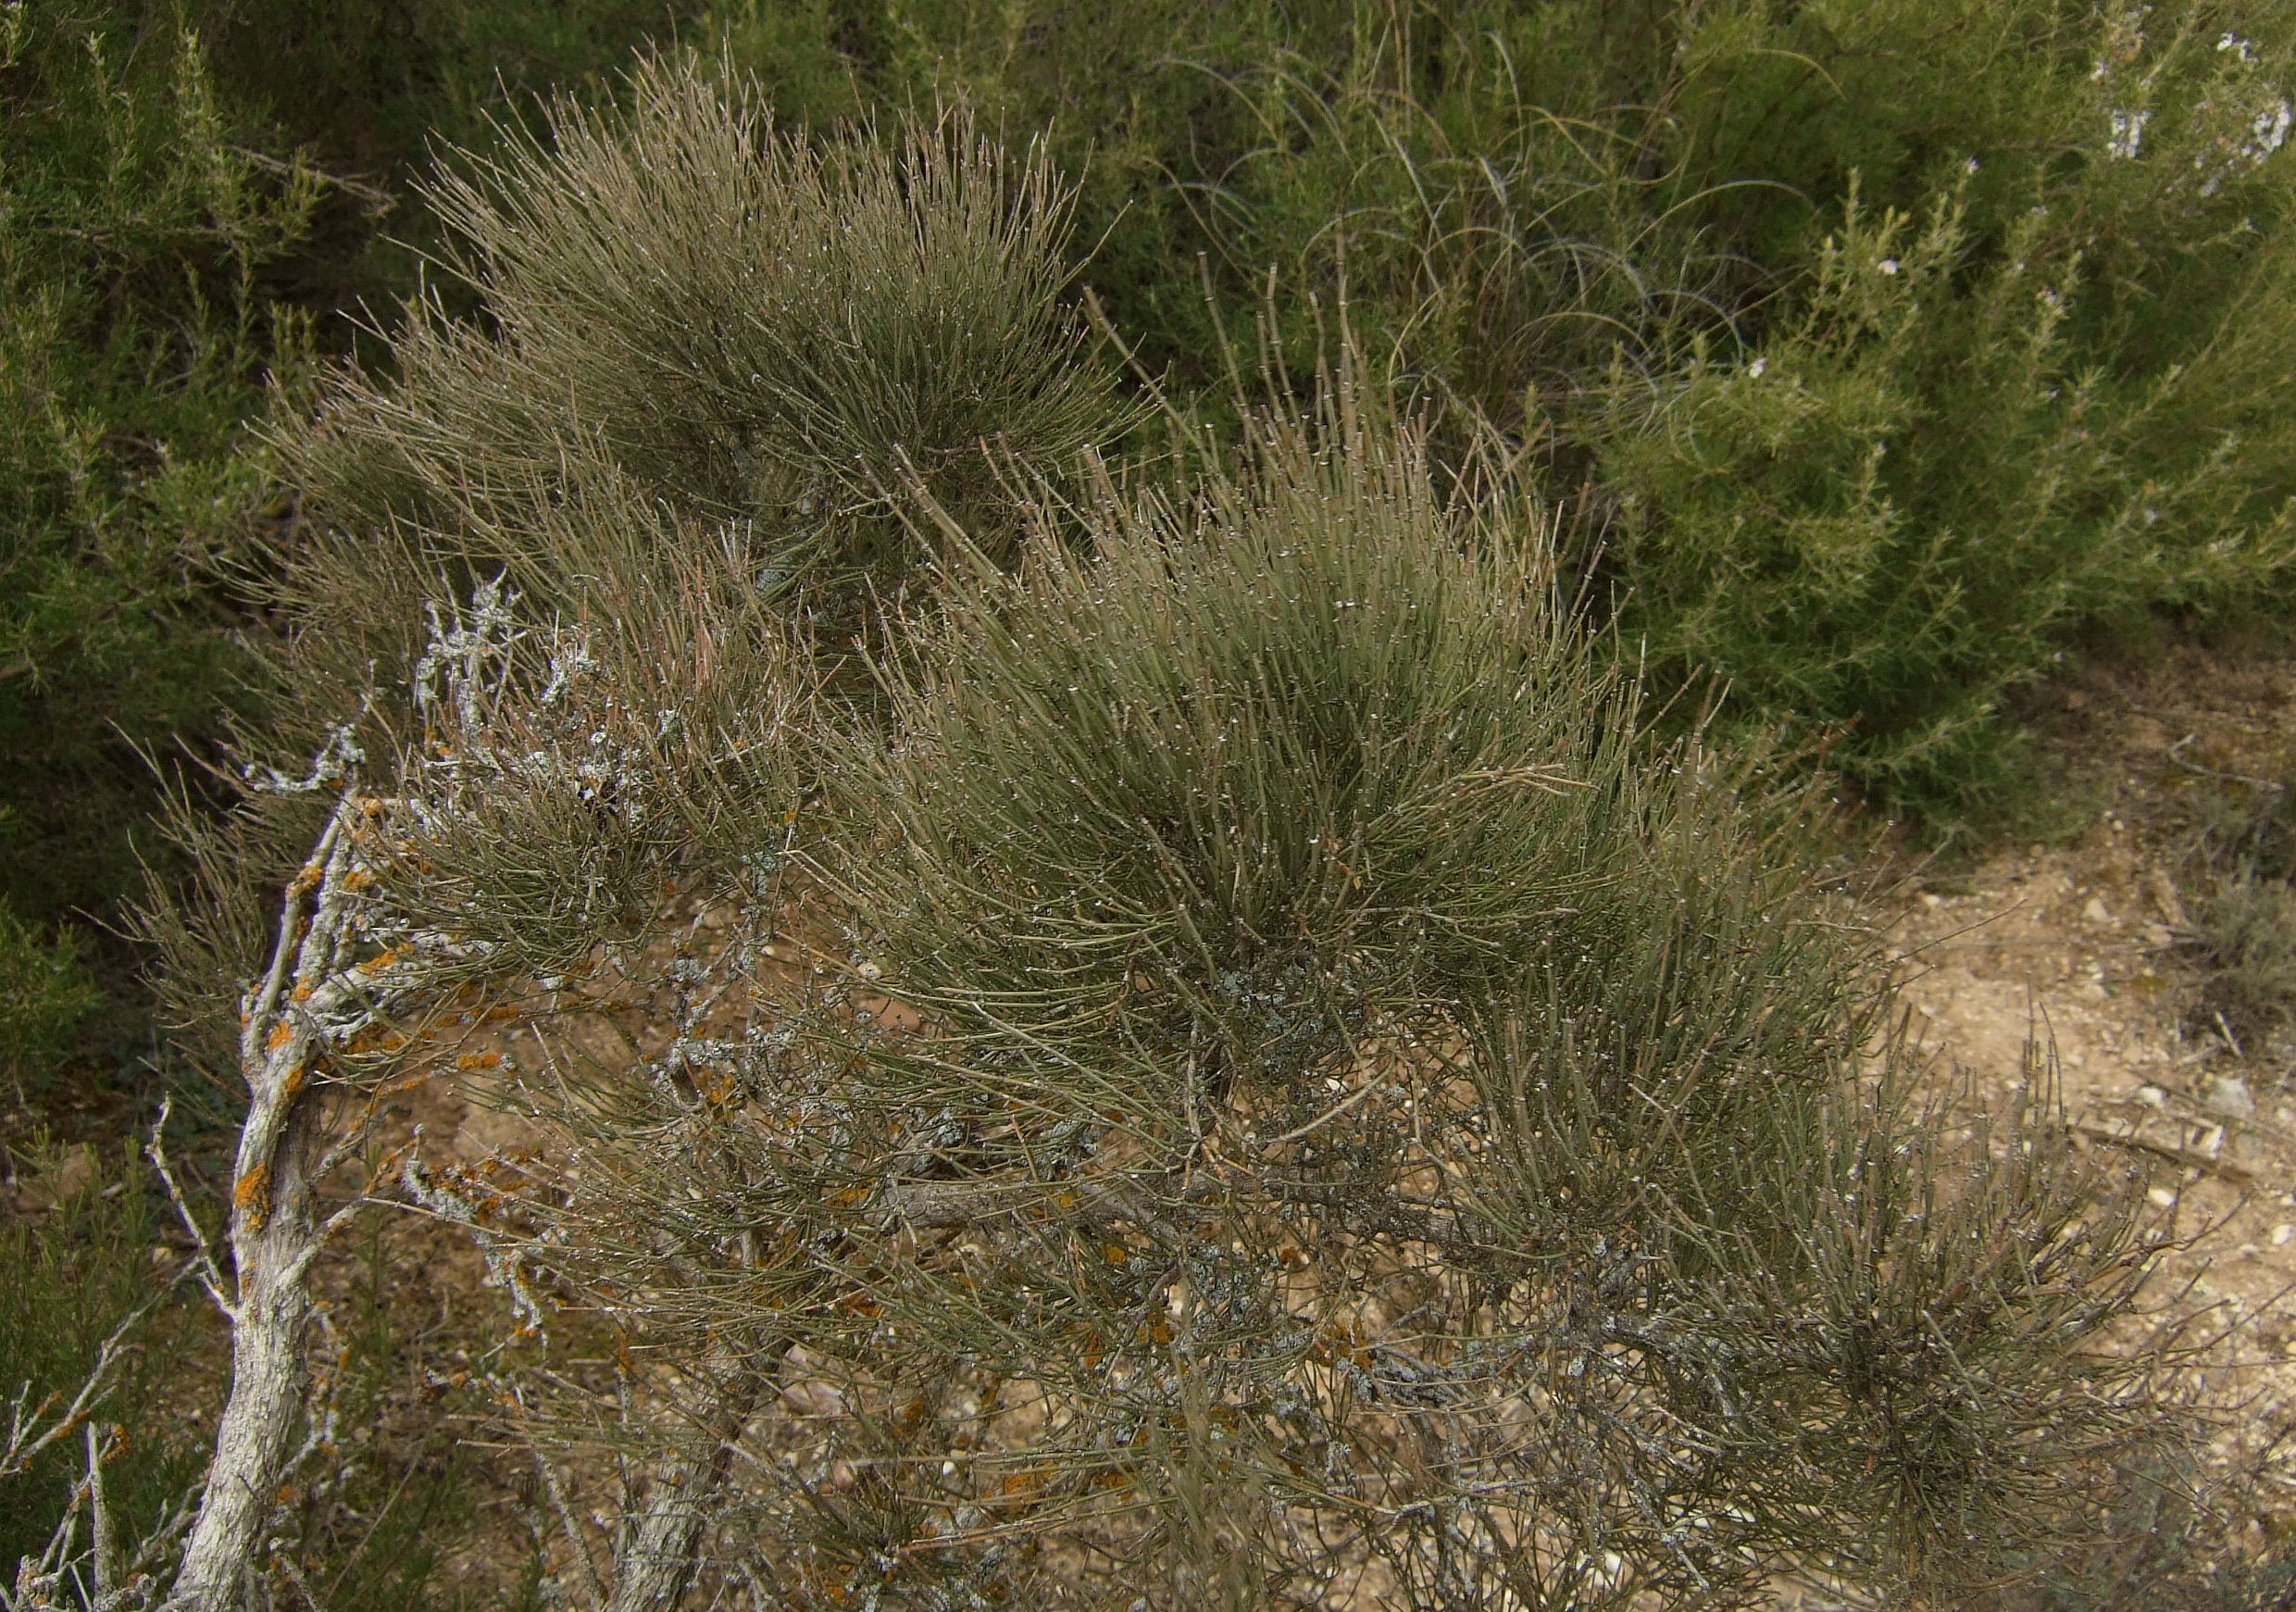 Ephedra scoparius